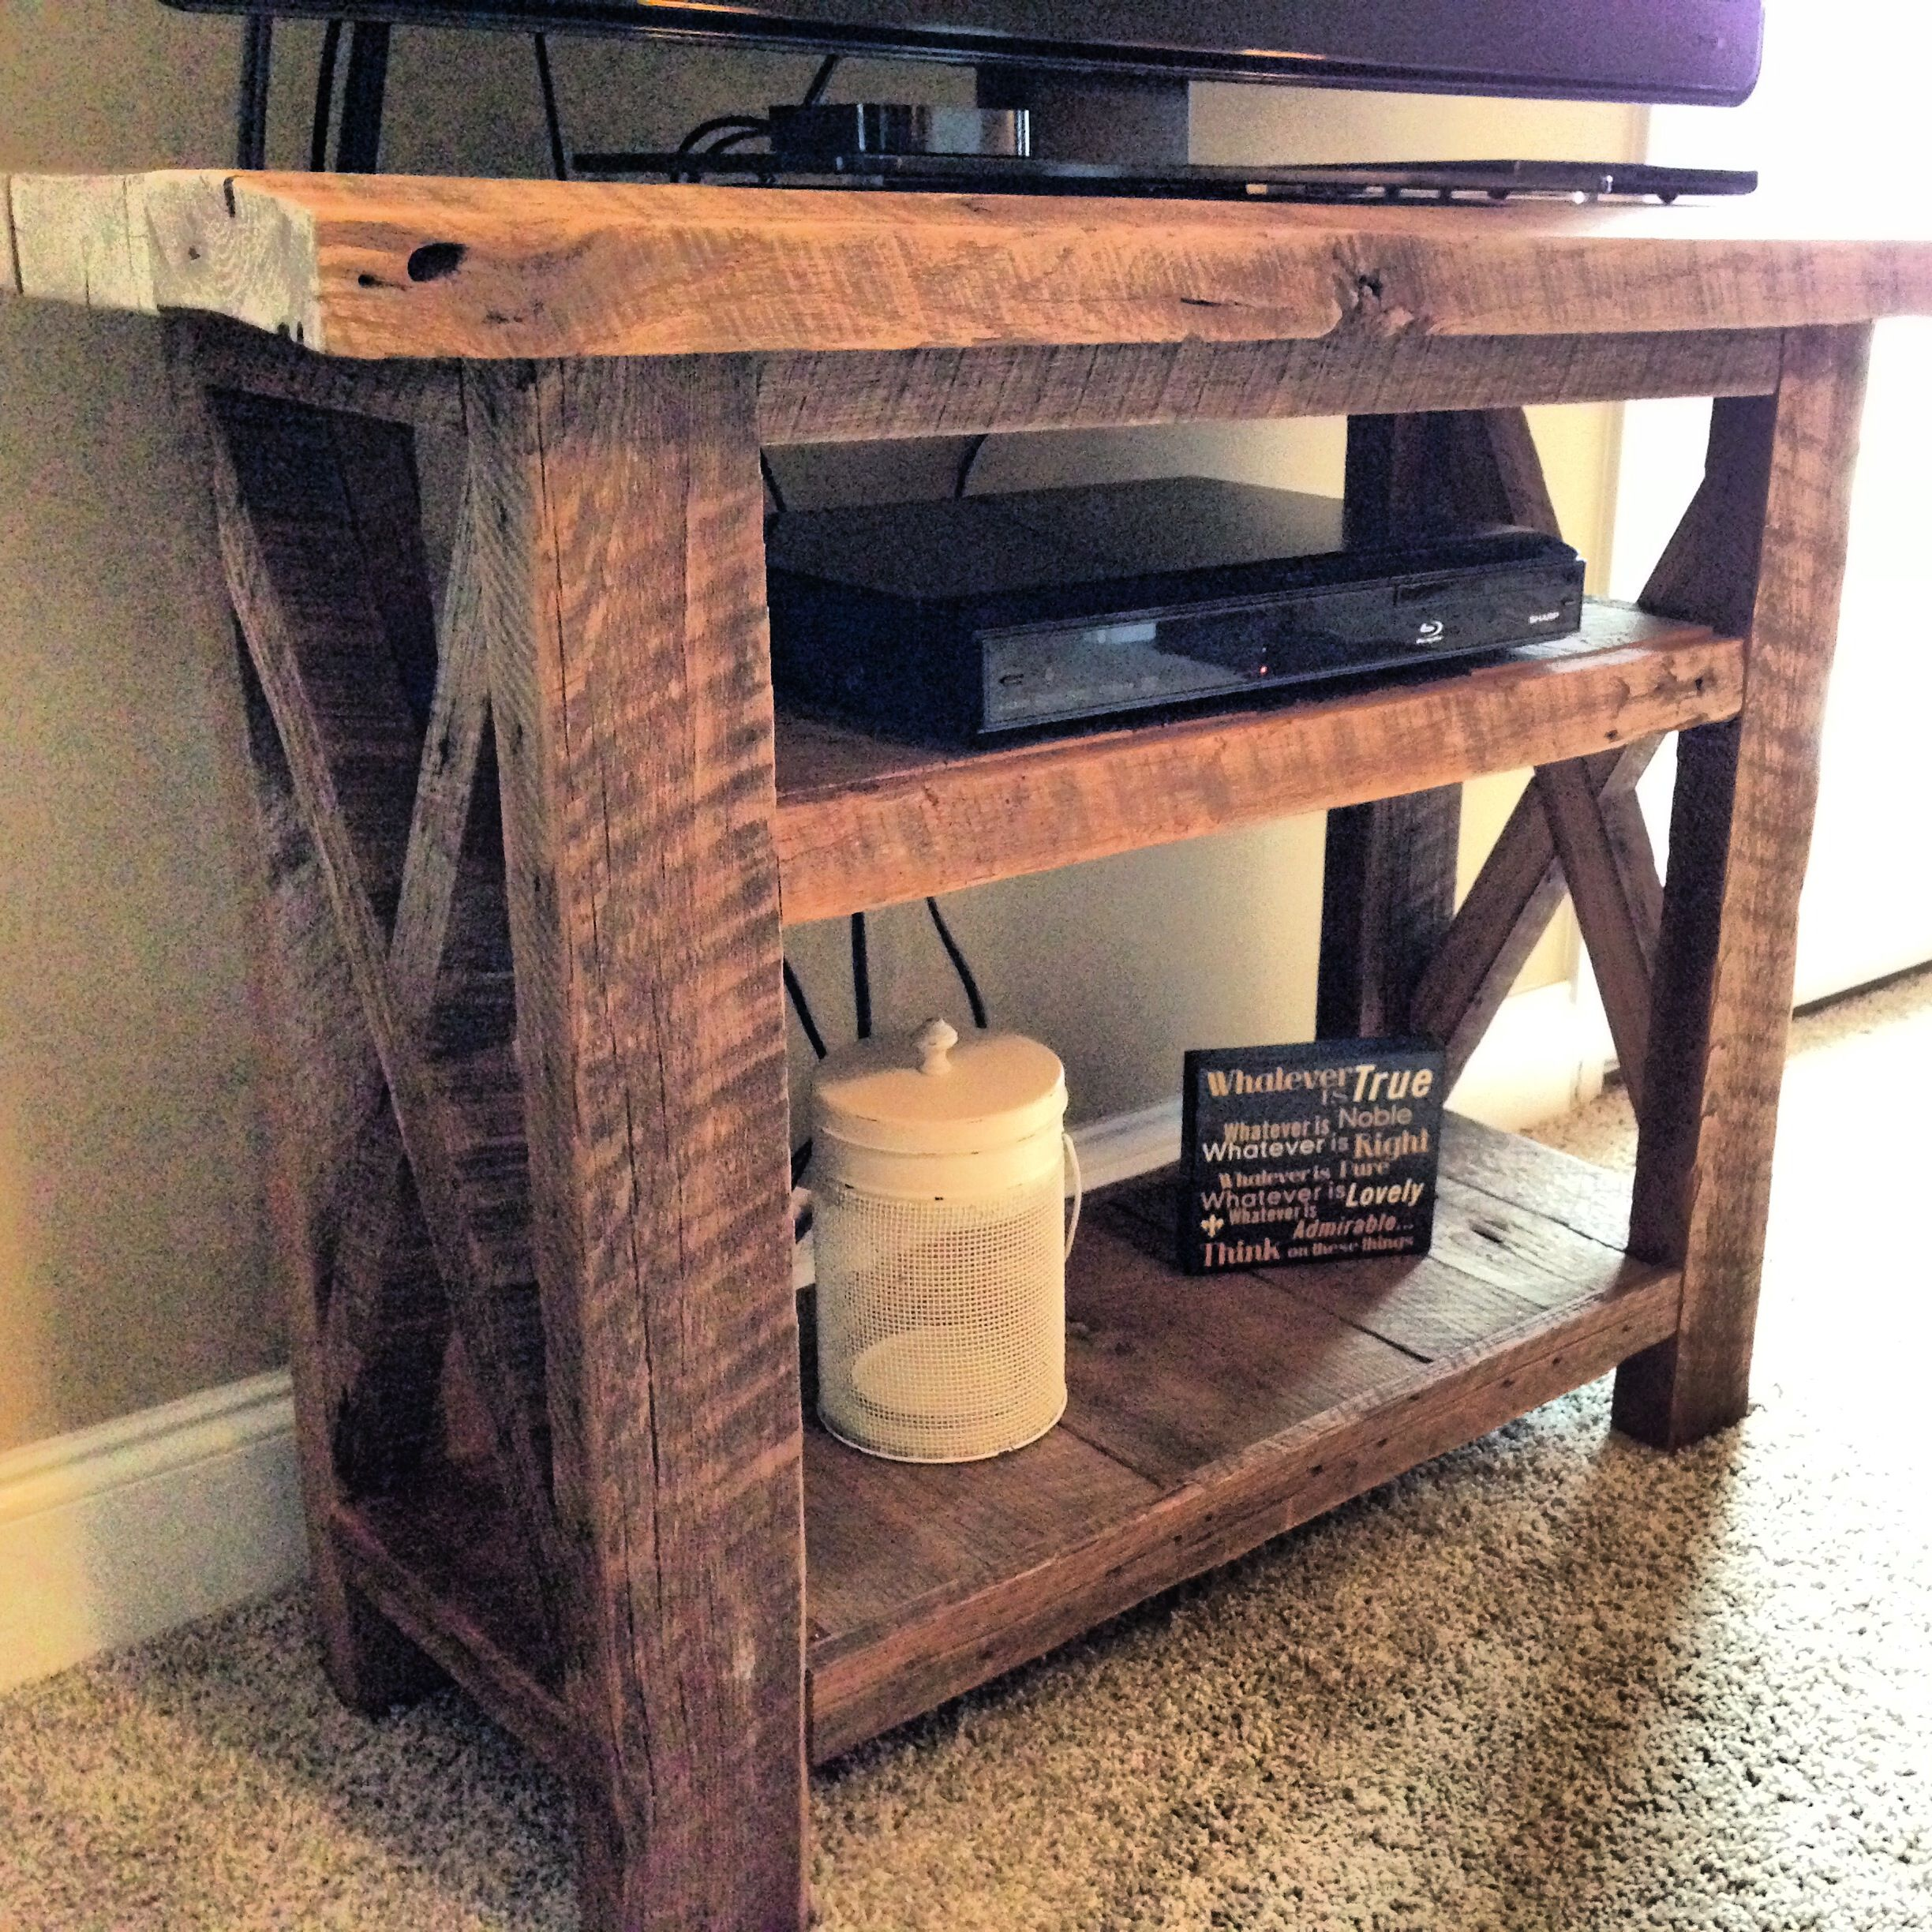 Barn Wood Furniture Ideas: Barn Wood TV Stand. Fits This 42in TV Perfect. We Can